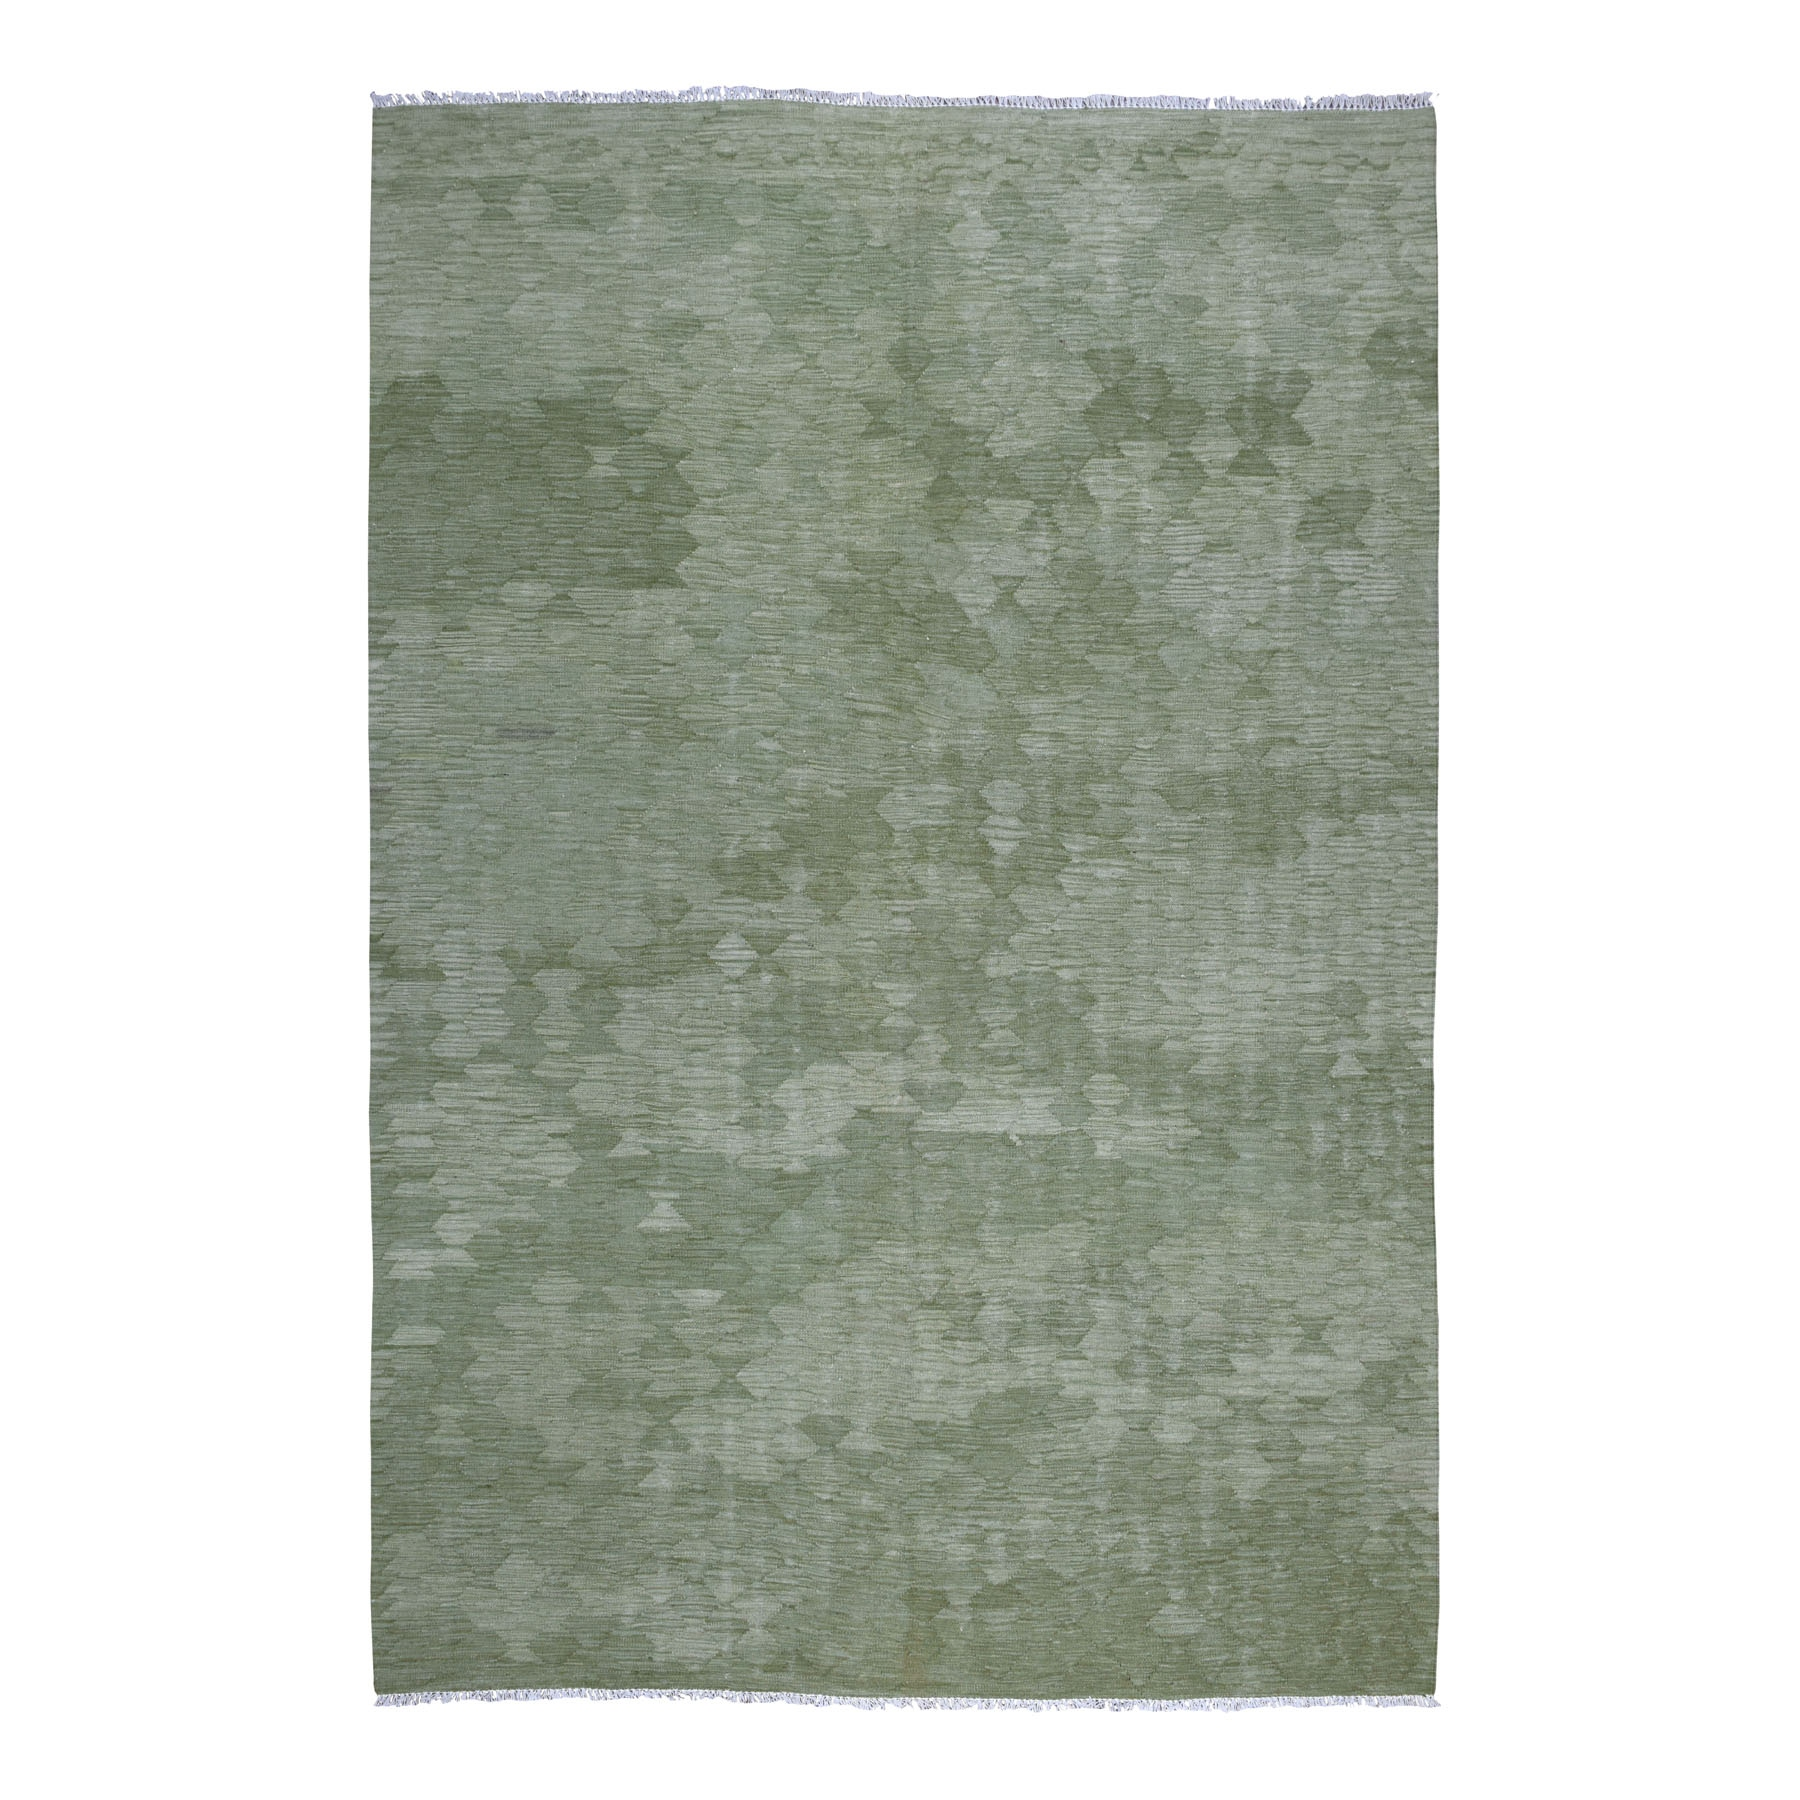 "6'9""x9'10"" Gray Green Shades Flat Weave Kilim Pure Wool Hand Woven Oriental Rug"